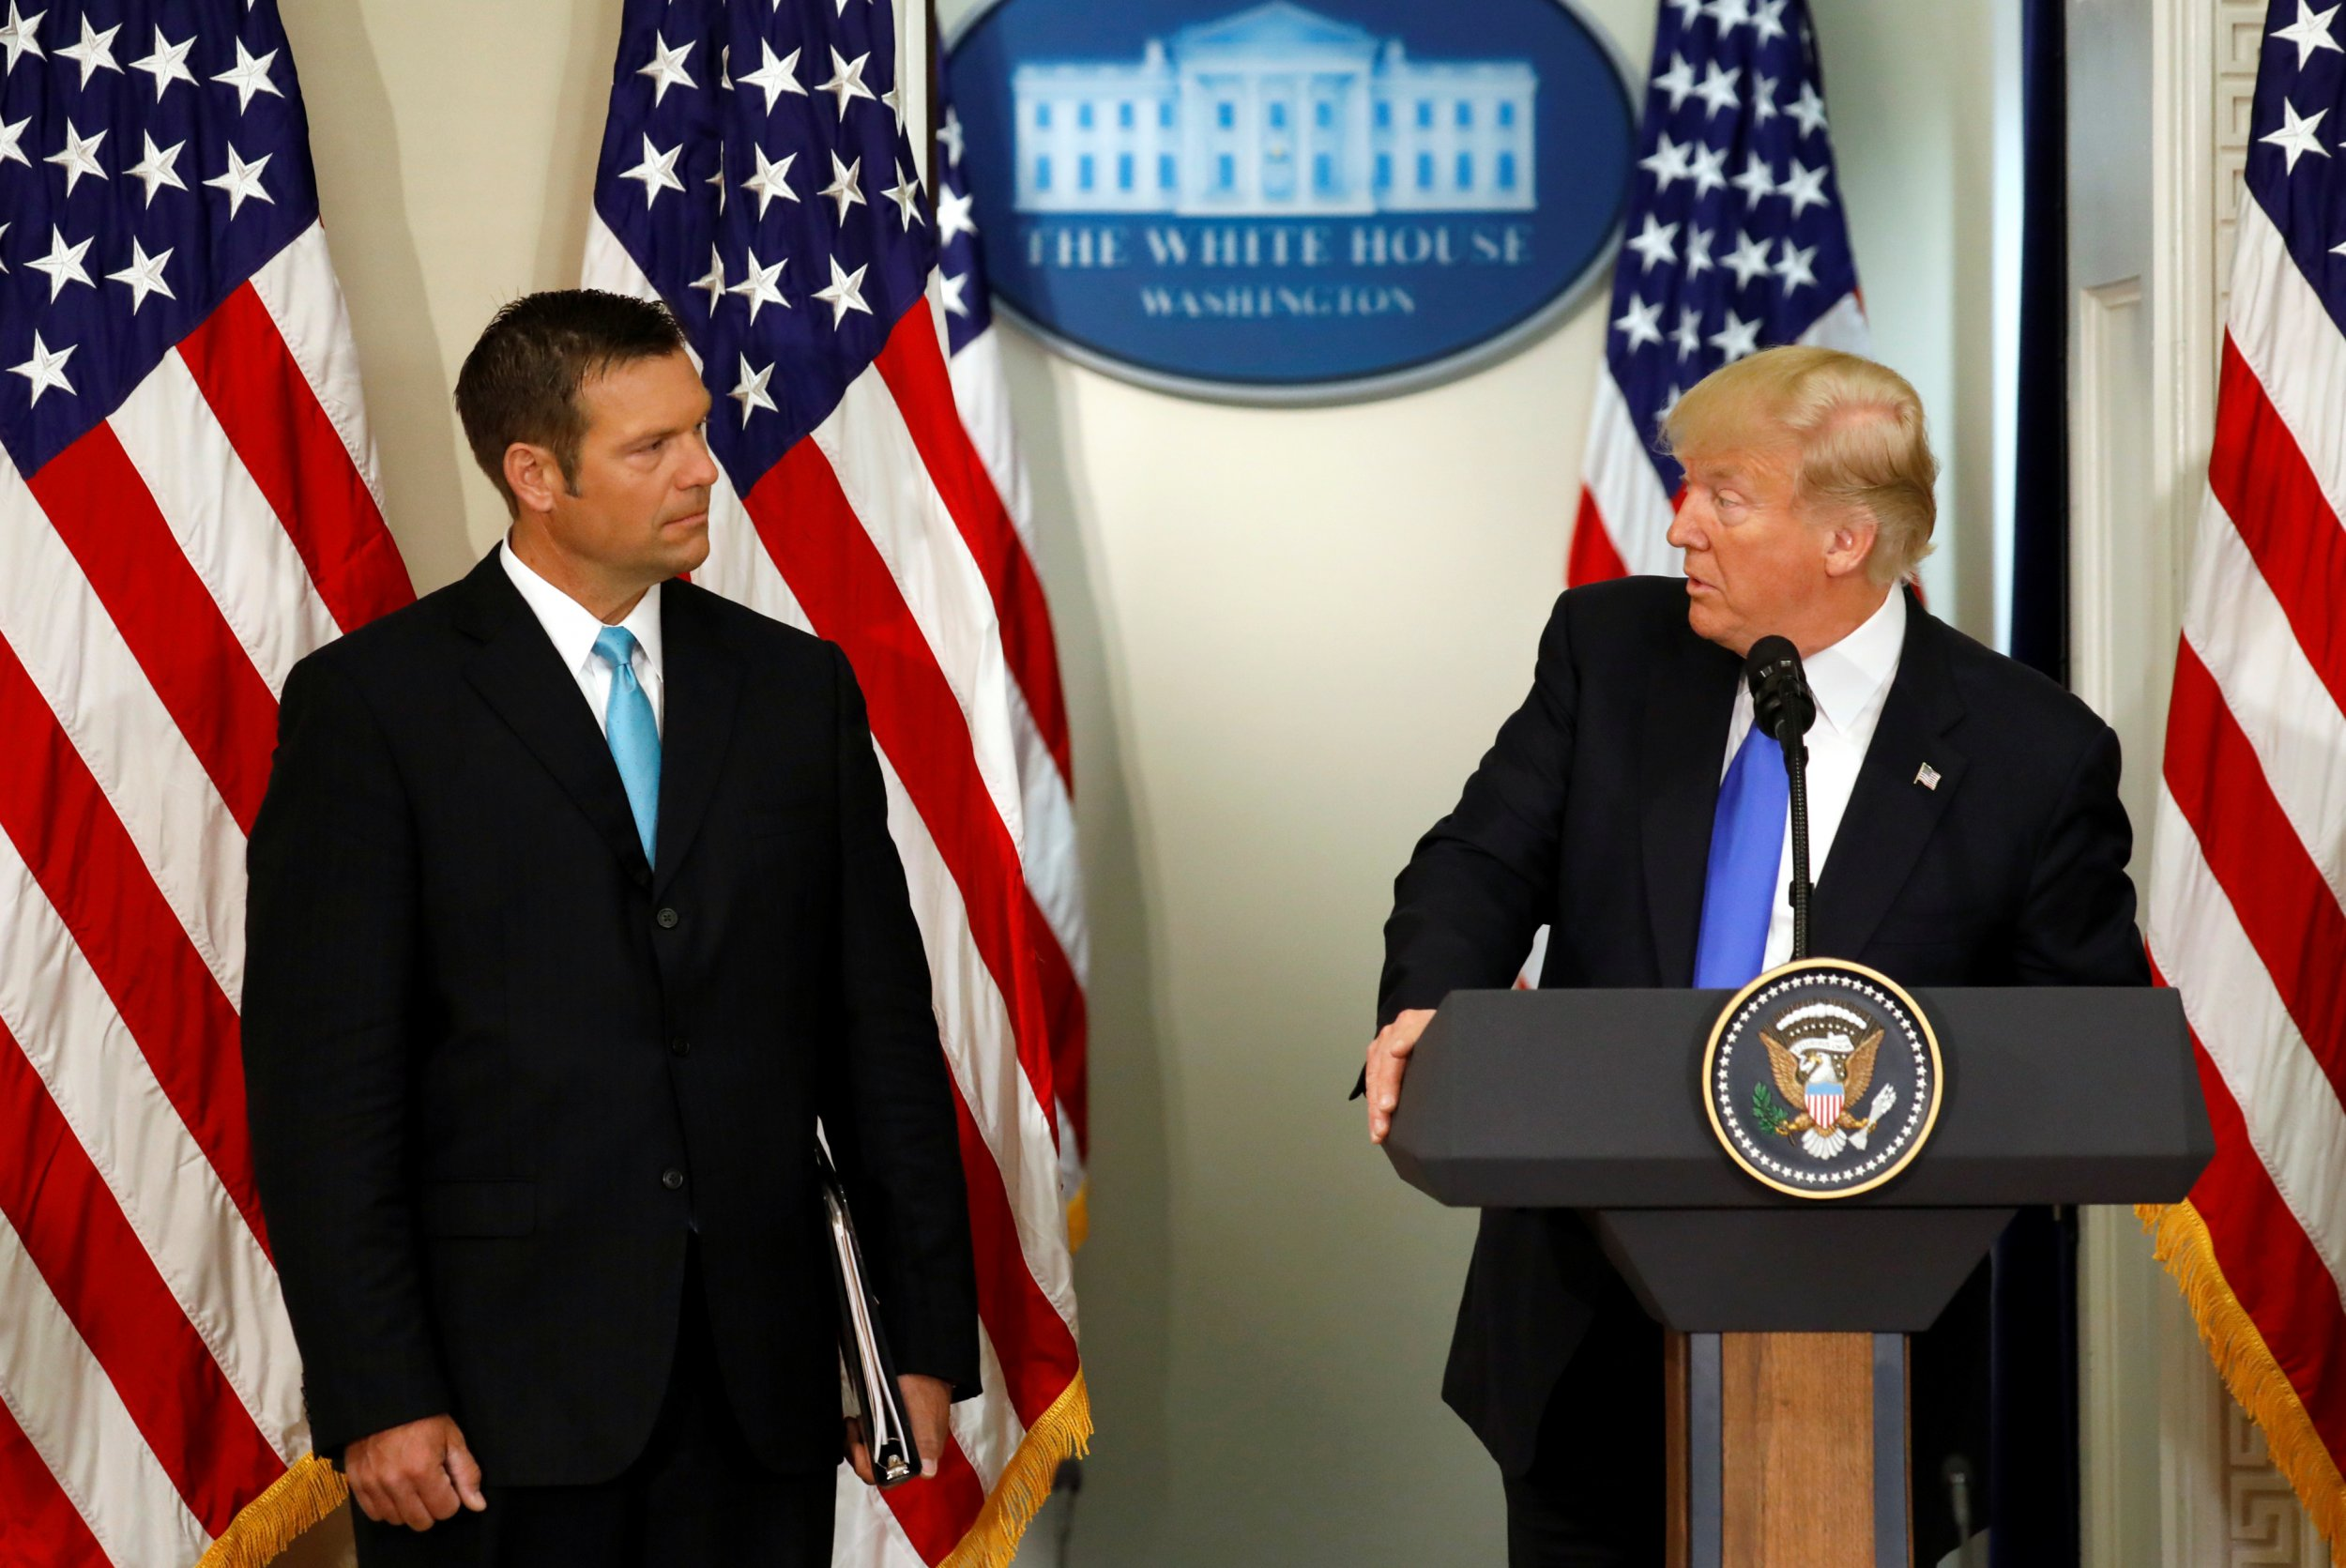 Donald Trump and voter fraud commission